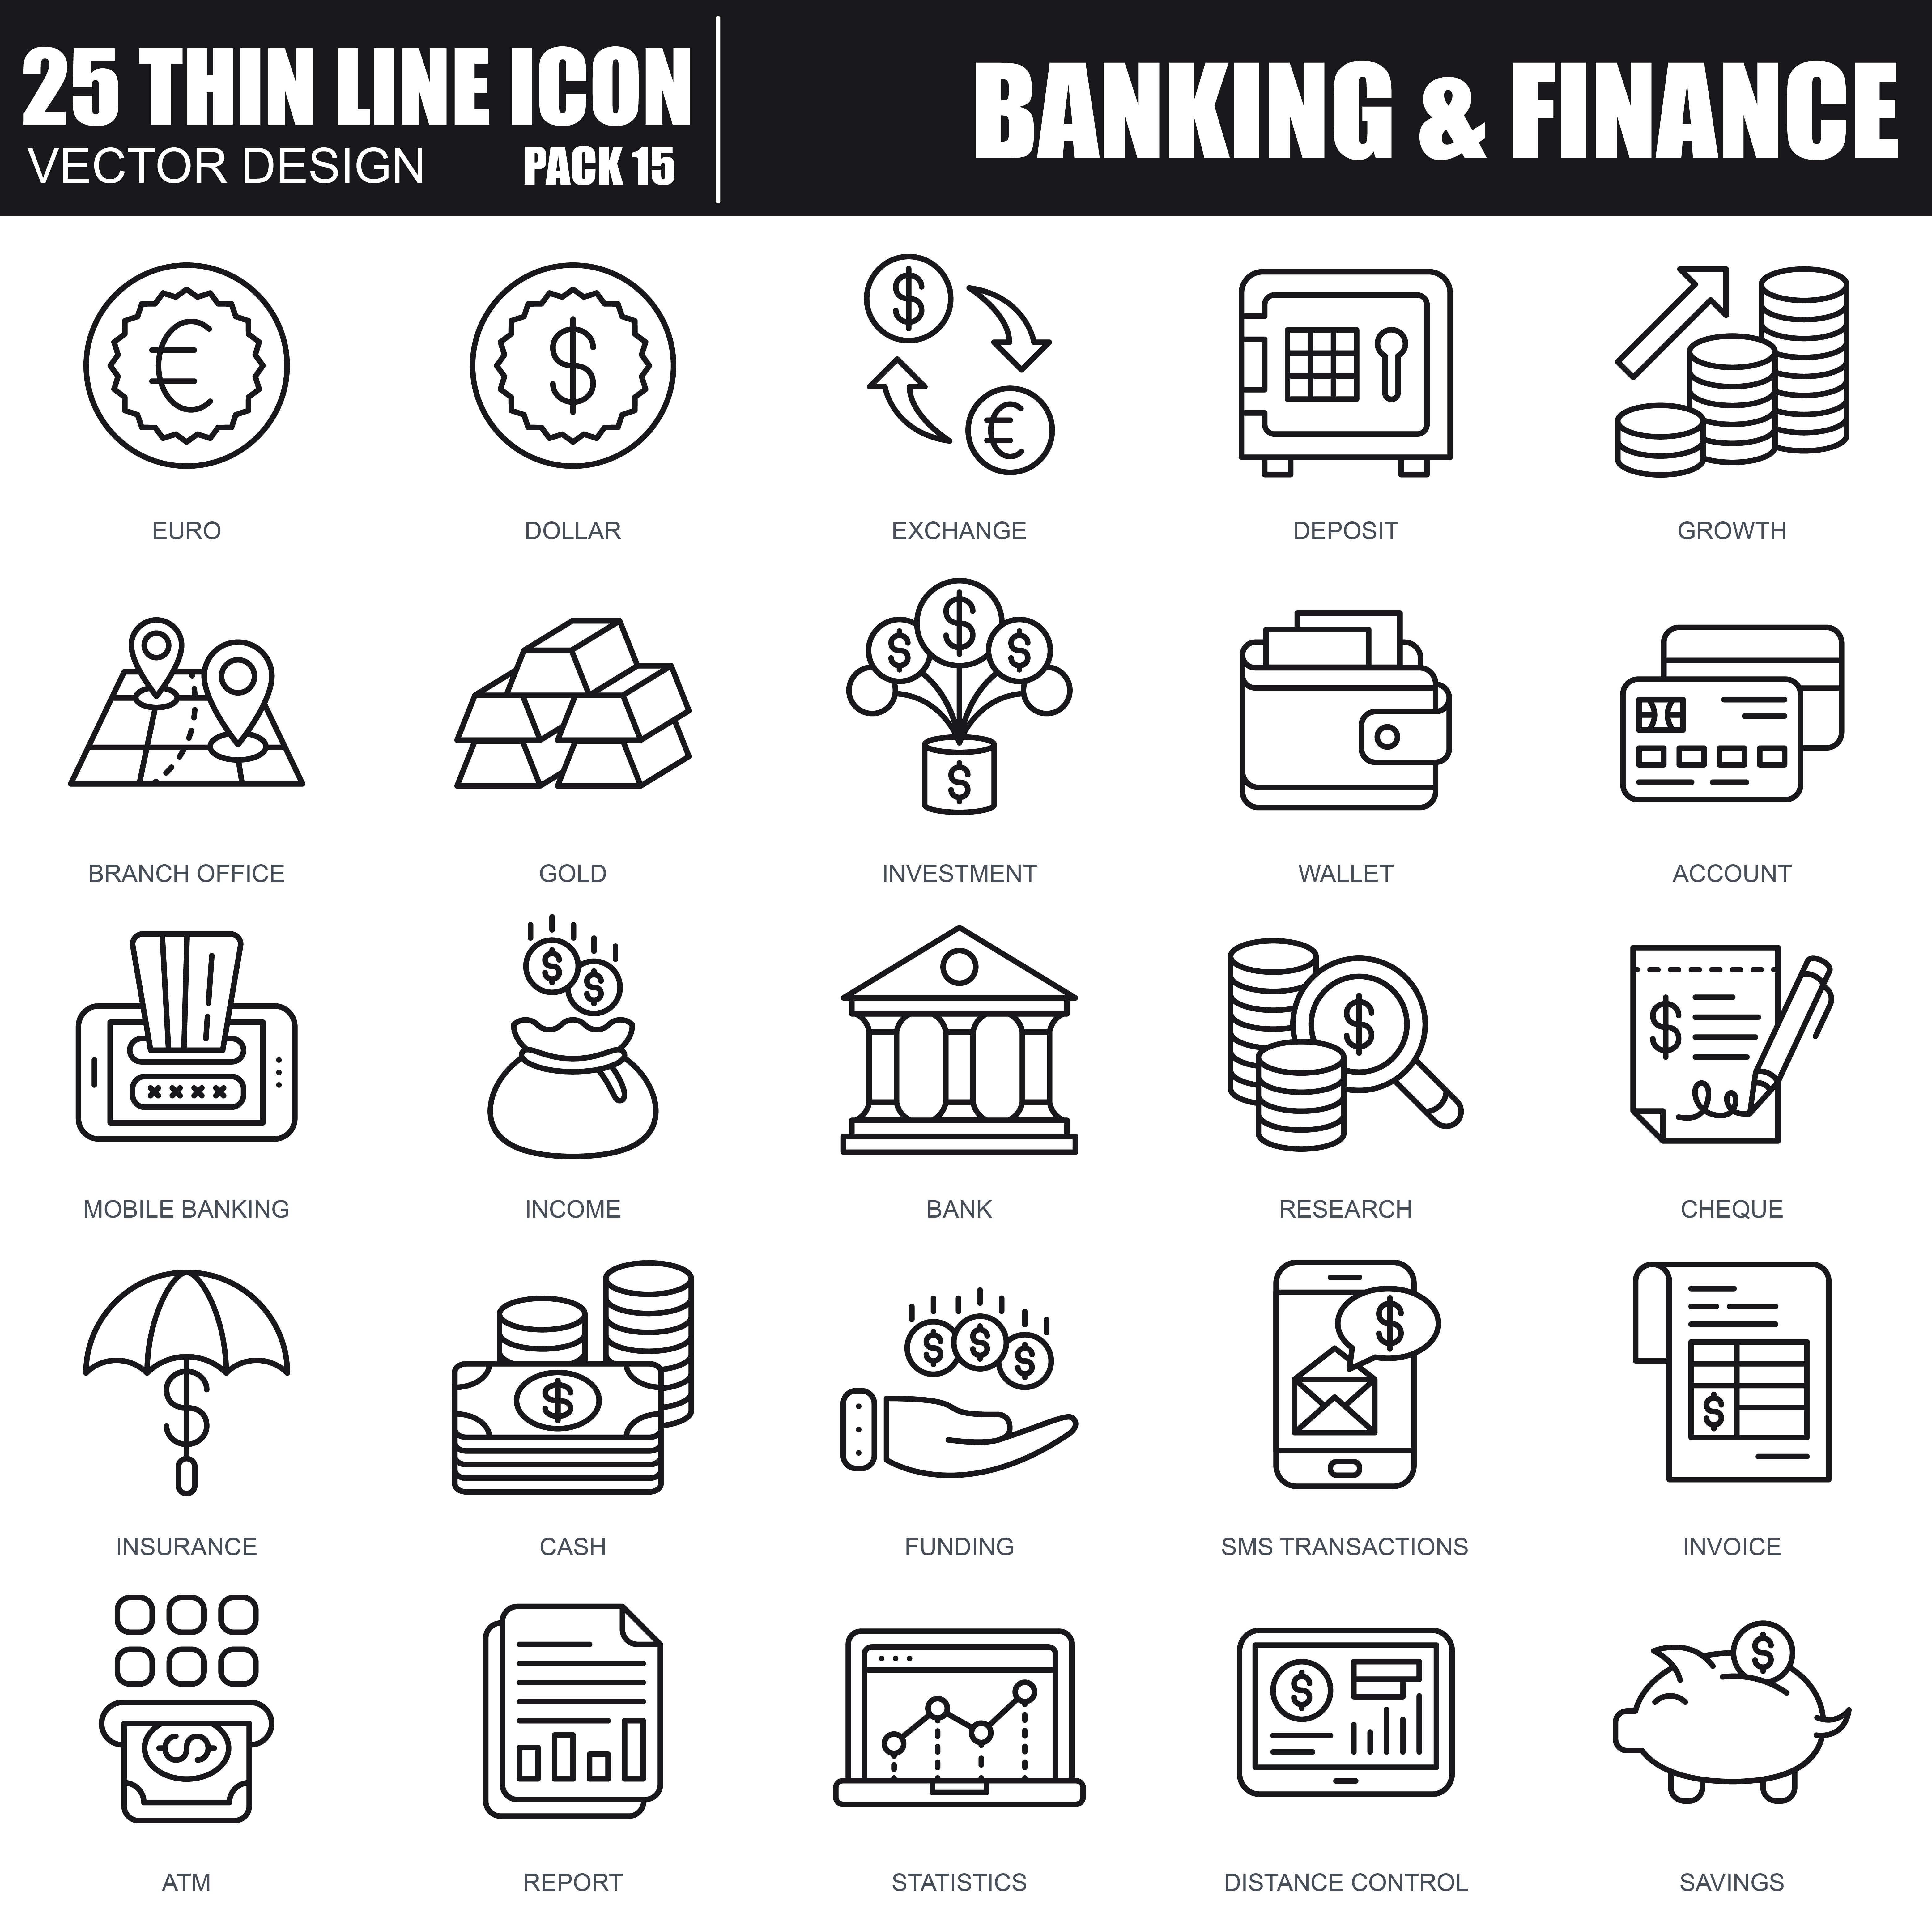 1000 Business Line Icons - just $22 - 35